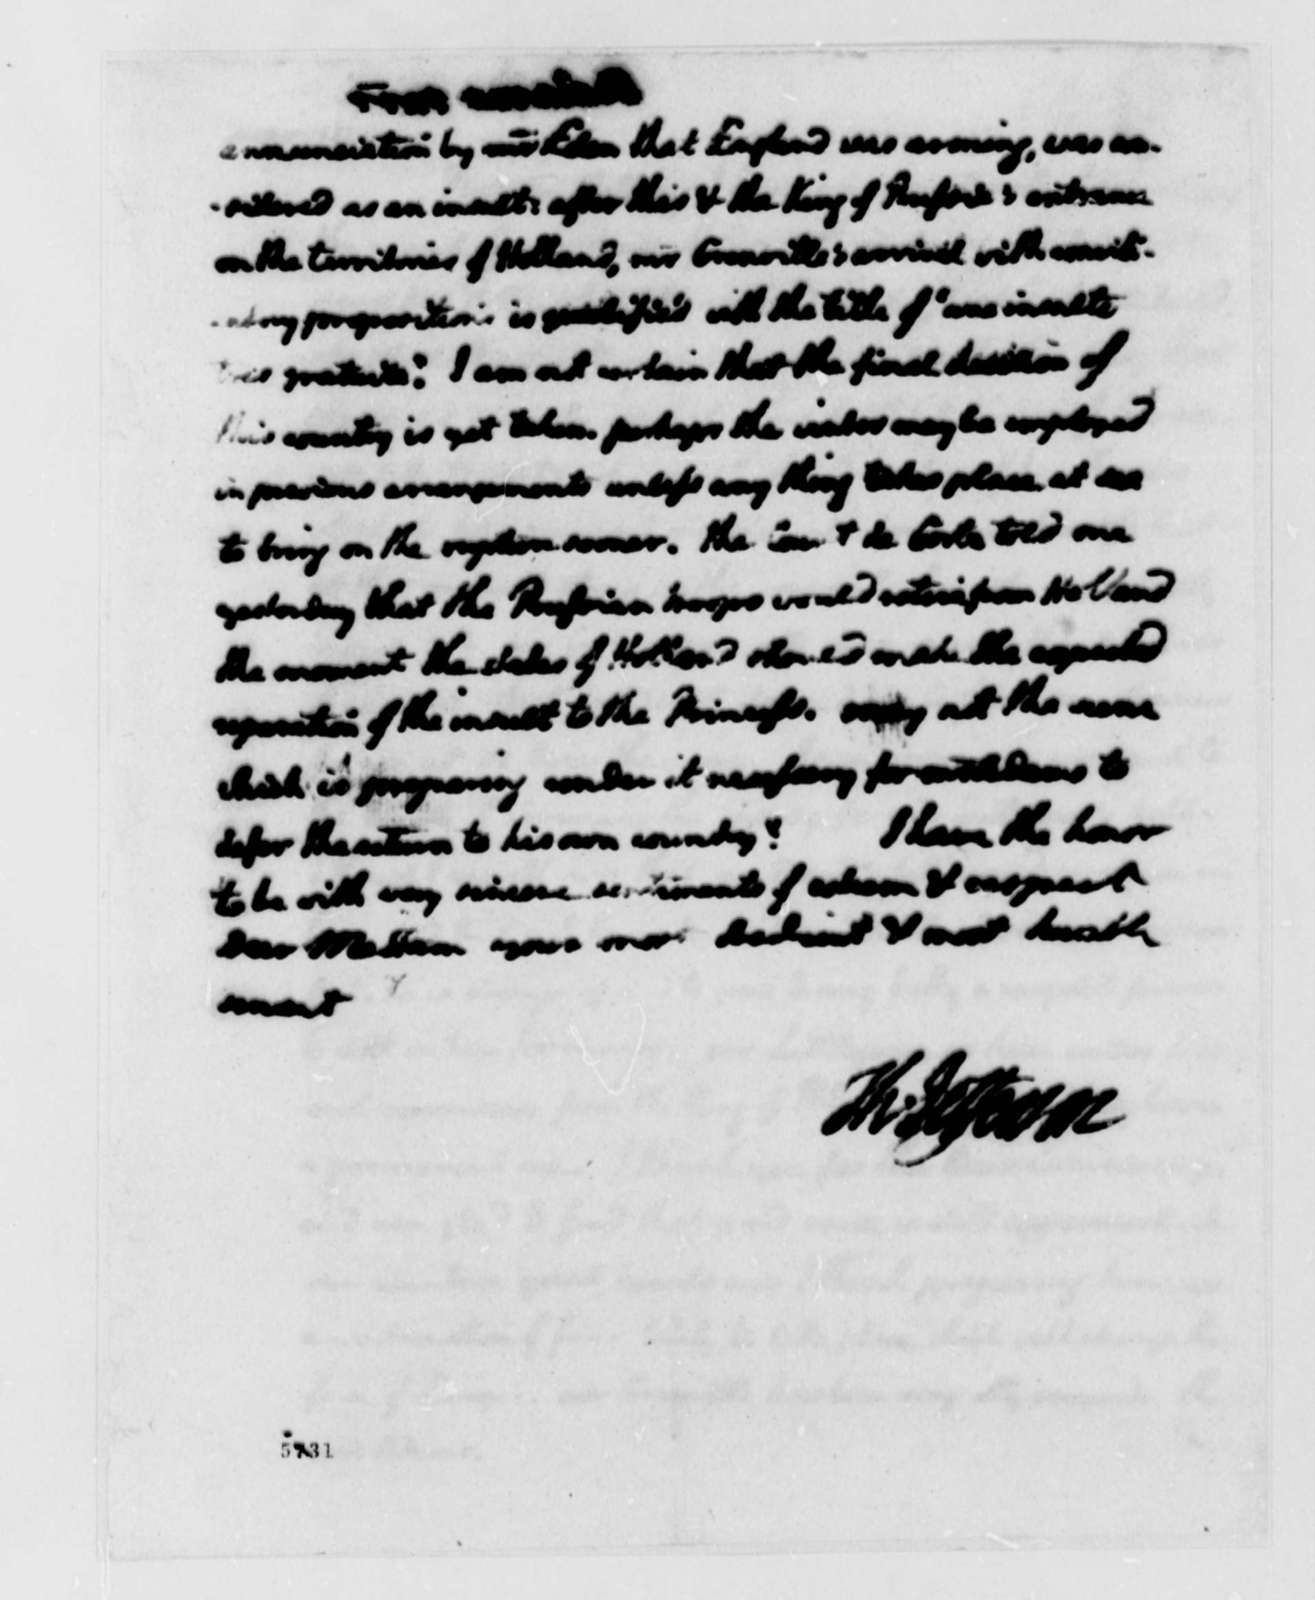 Thomas Jefferson to Abigail Smith Adams, October 4, 1787